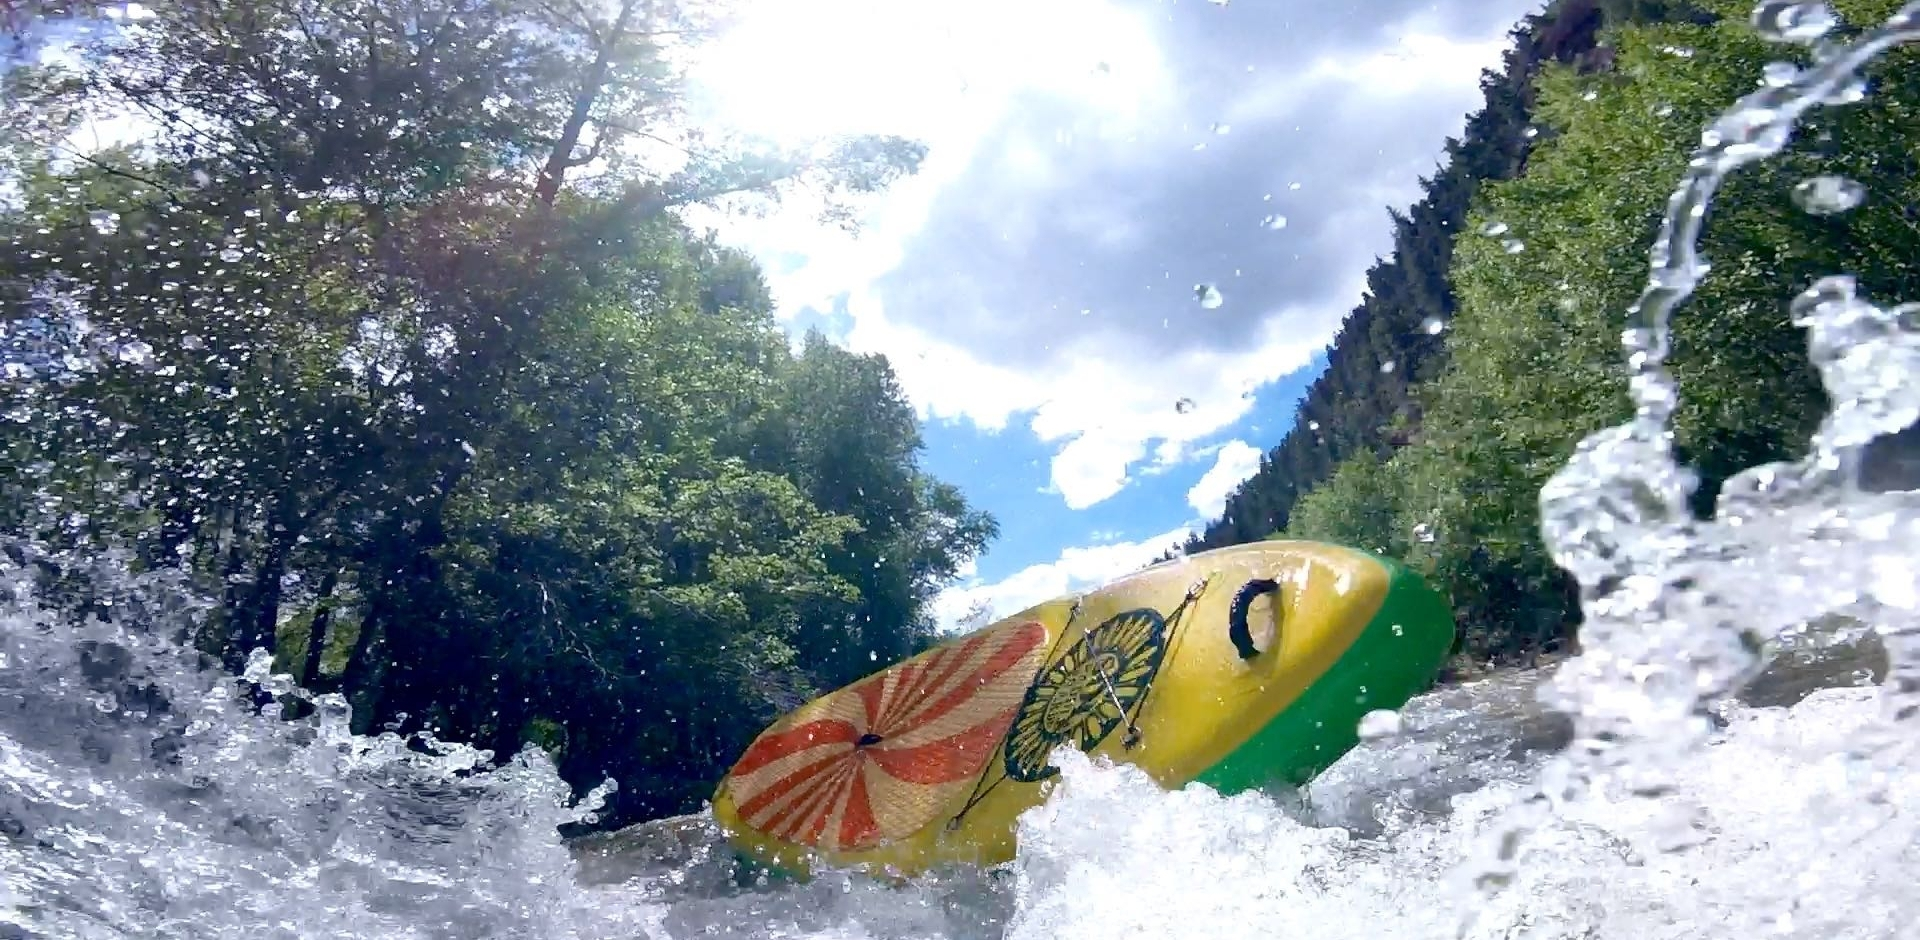 Whitewater SUP wipeout San Miguel River near Telluride, Colorado